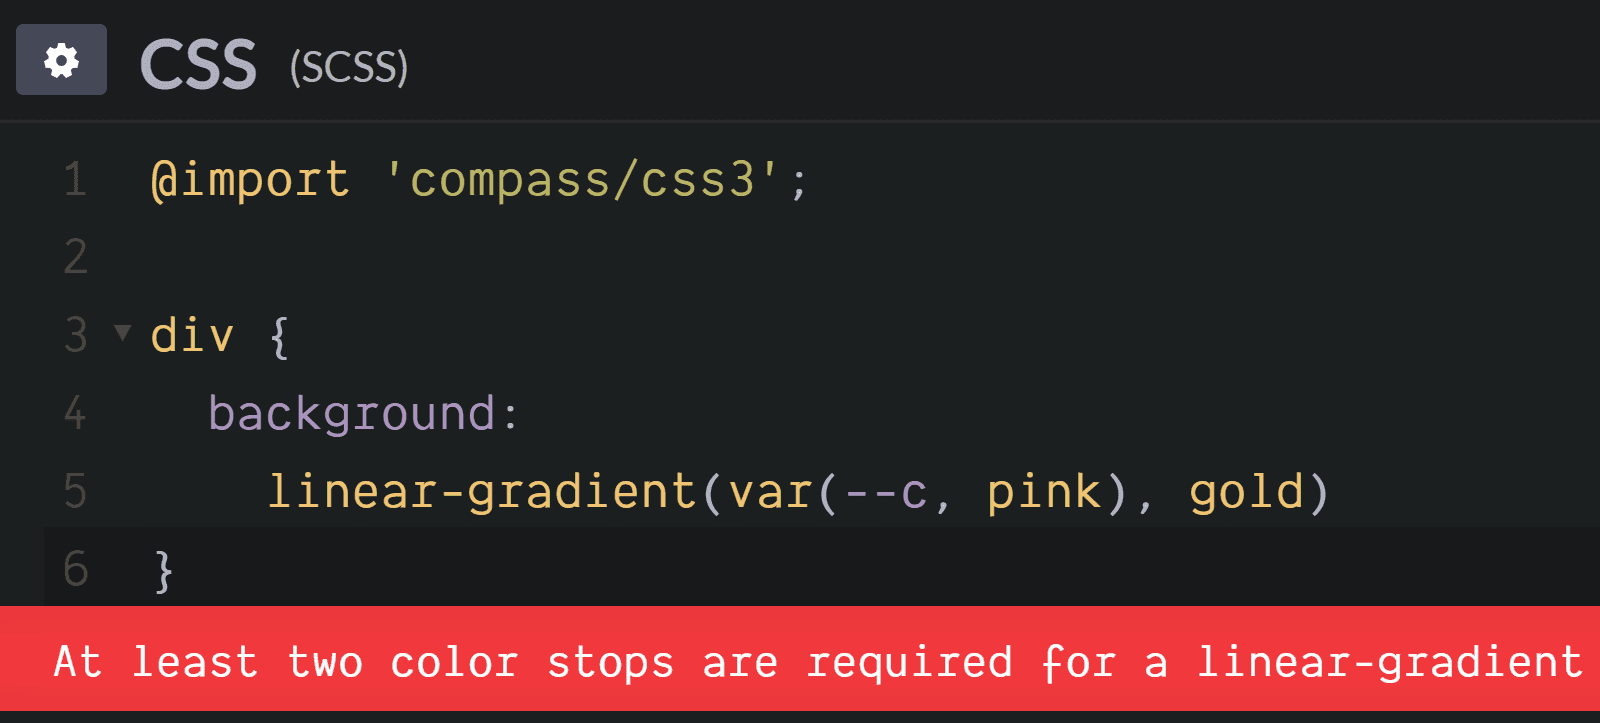 Screenshot. Shows the At least two color stops are required for a linear-gradient error when trying to set background: linear-gradient(var(--c, pink), gold).